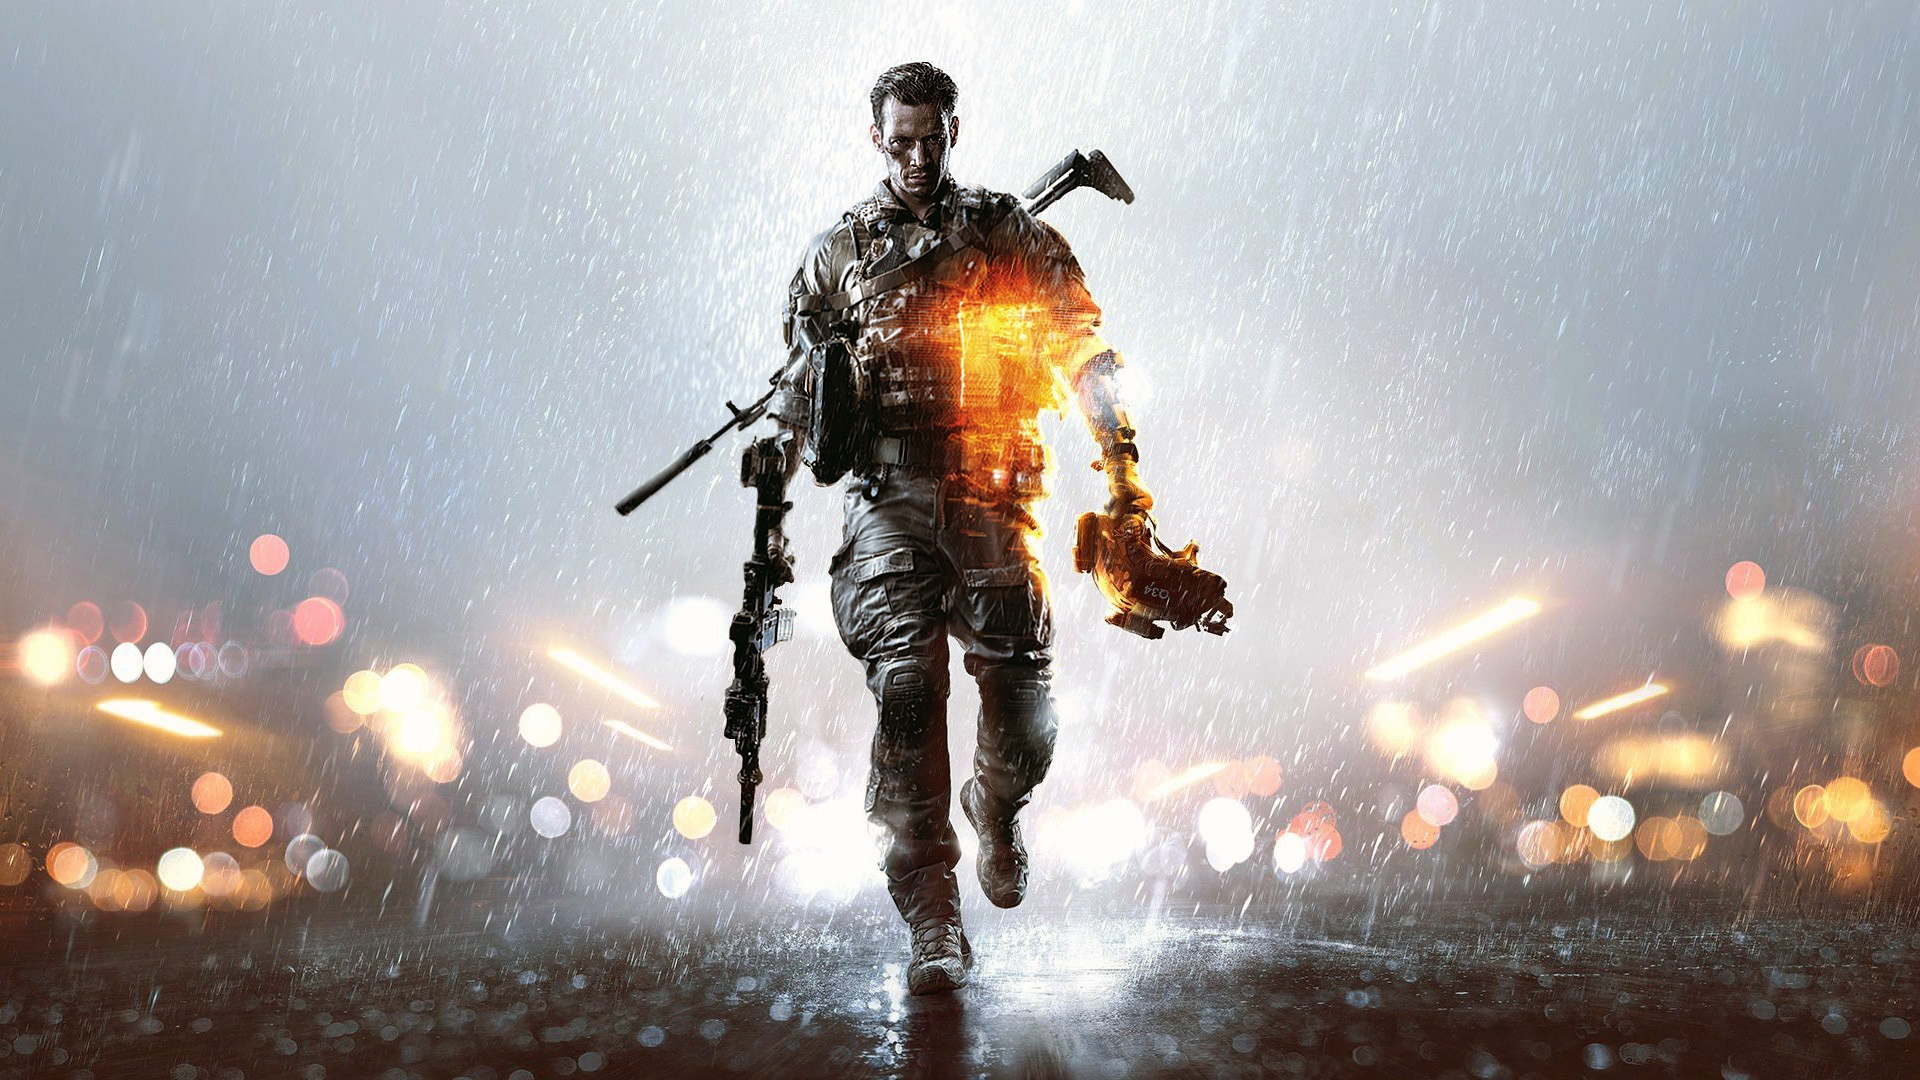 Battlefield 4 Computer Wallpapers, Desktop Backgrounds ...